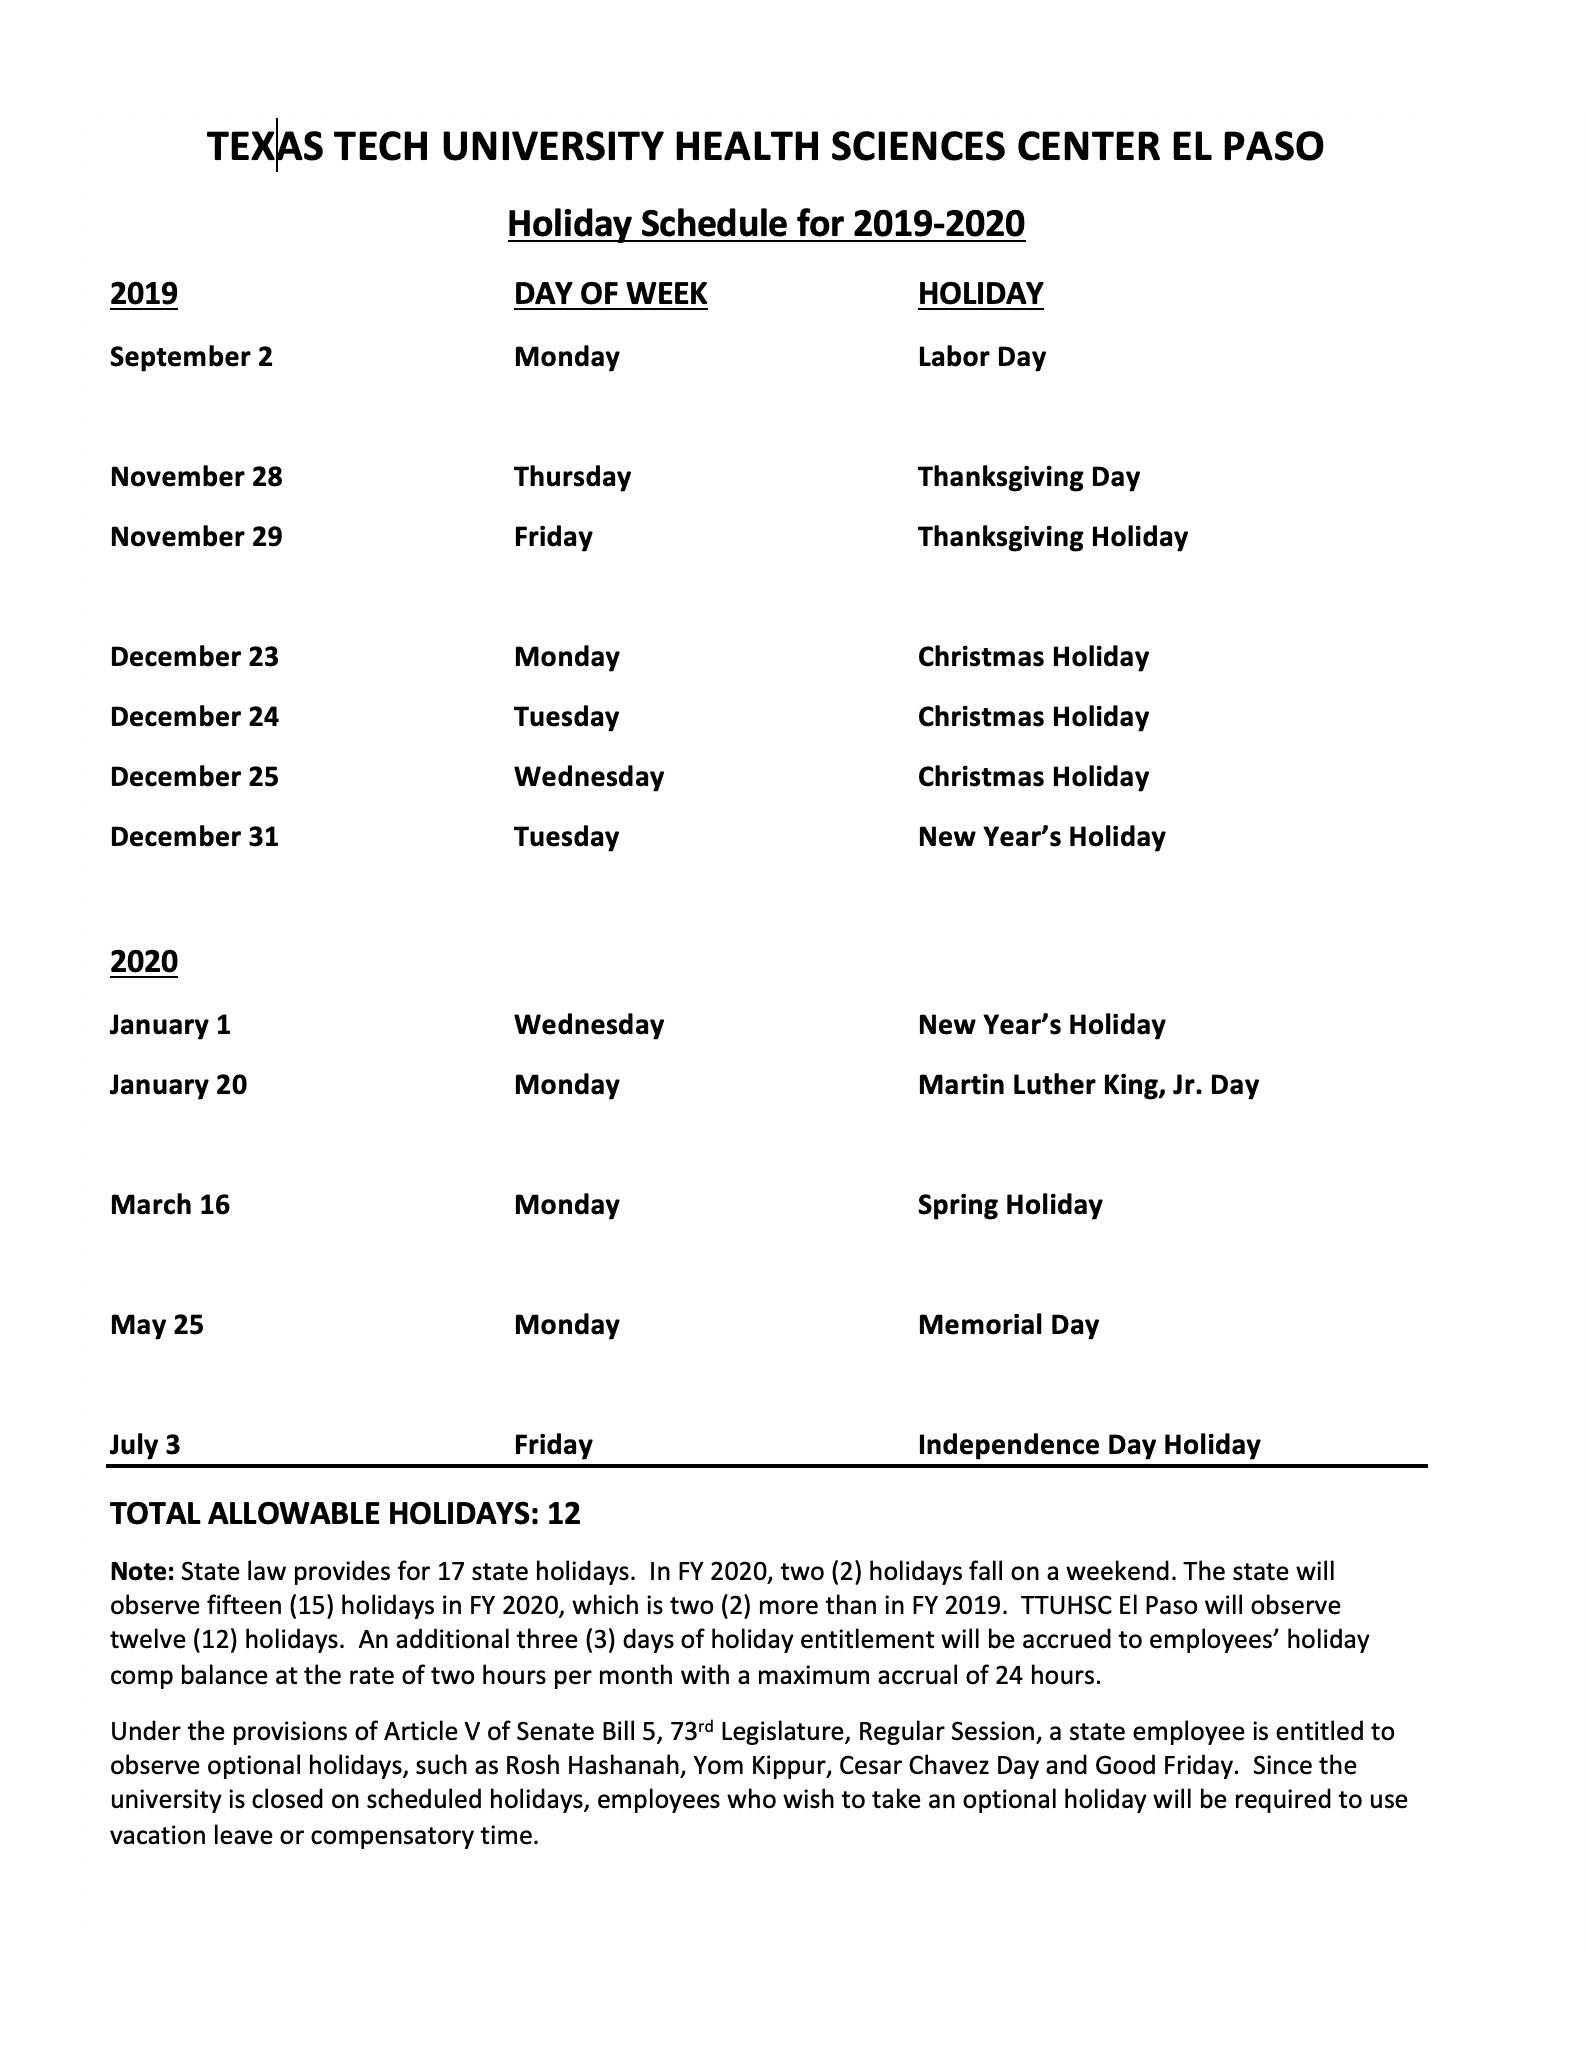 Holiday Schedule for 2019 2020